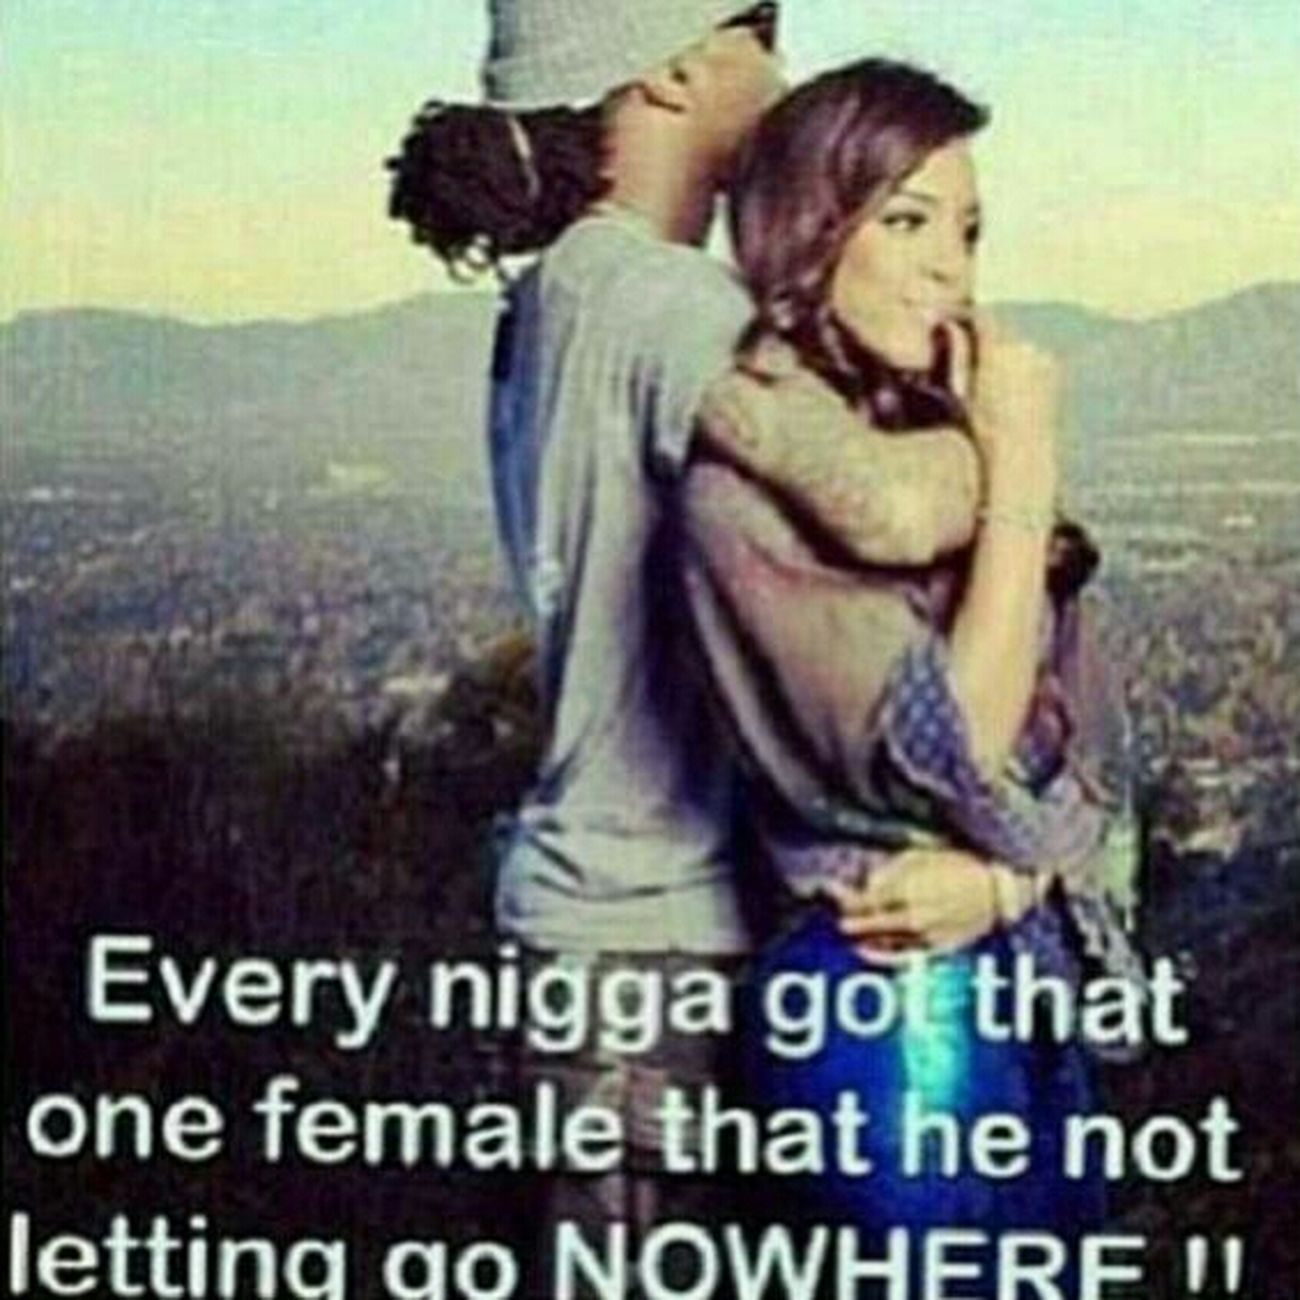 Hoes Comee && Go , Buh Who Always Gonee Be There ! Me ( The Wifee ] Because At The End Of The Day , He Comes Home To Me Everyday . && I Sleep In His Bed Every Niqht . This MY Husband && Mfs Think Im Goinq Somewhere ? Lls , He Not Lettinq Me Go Soooo Yall